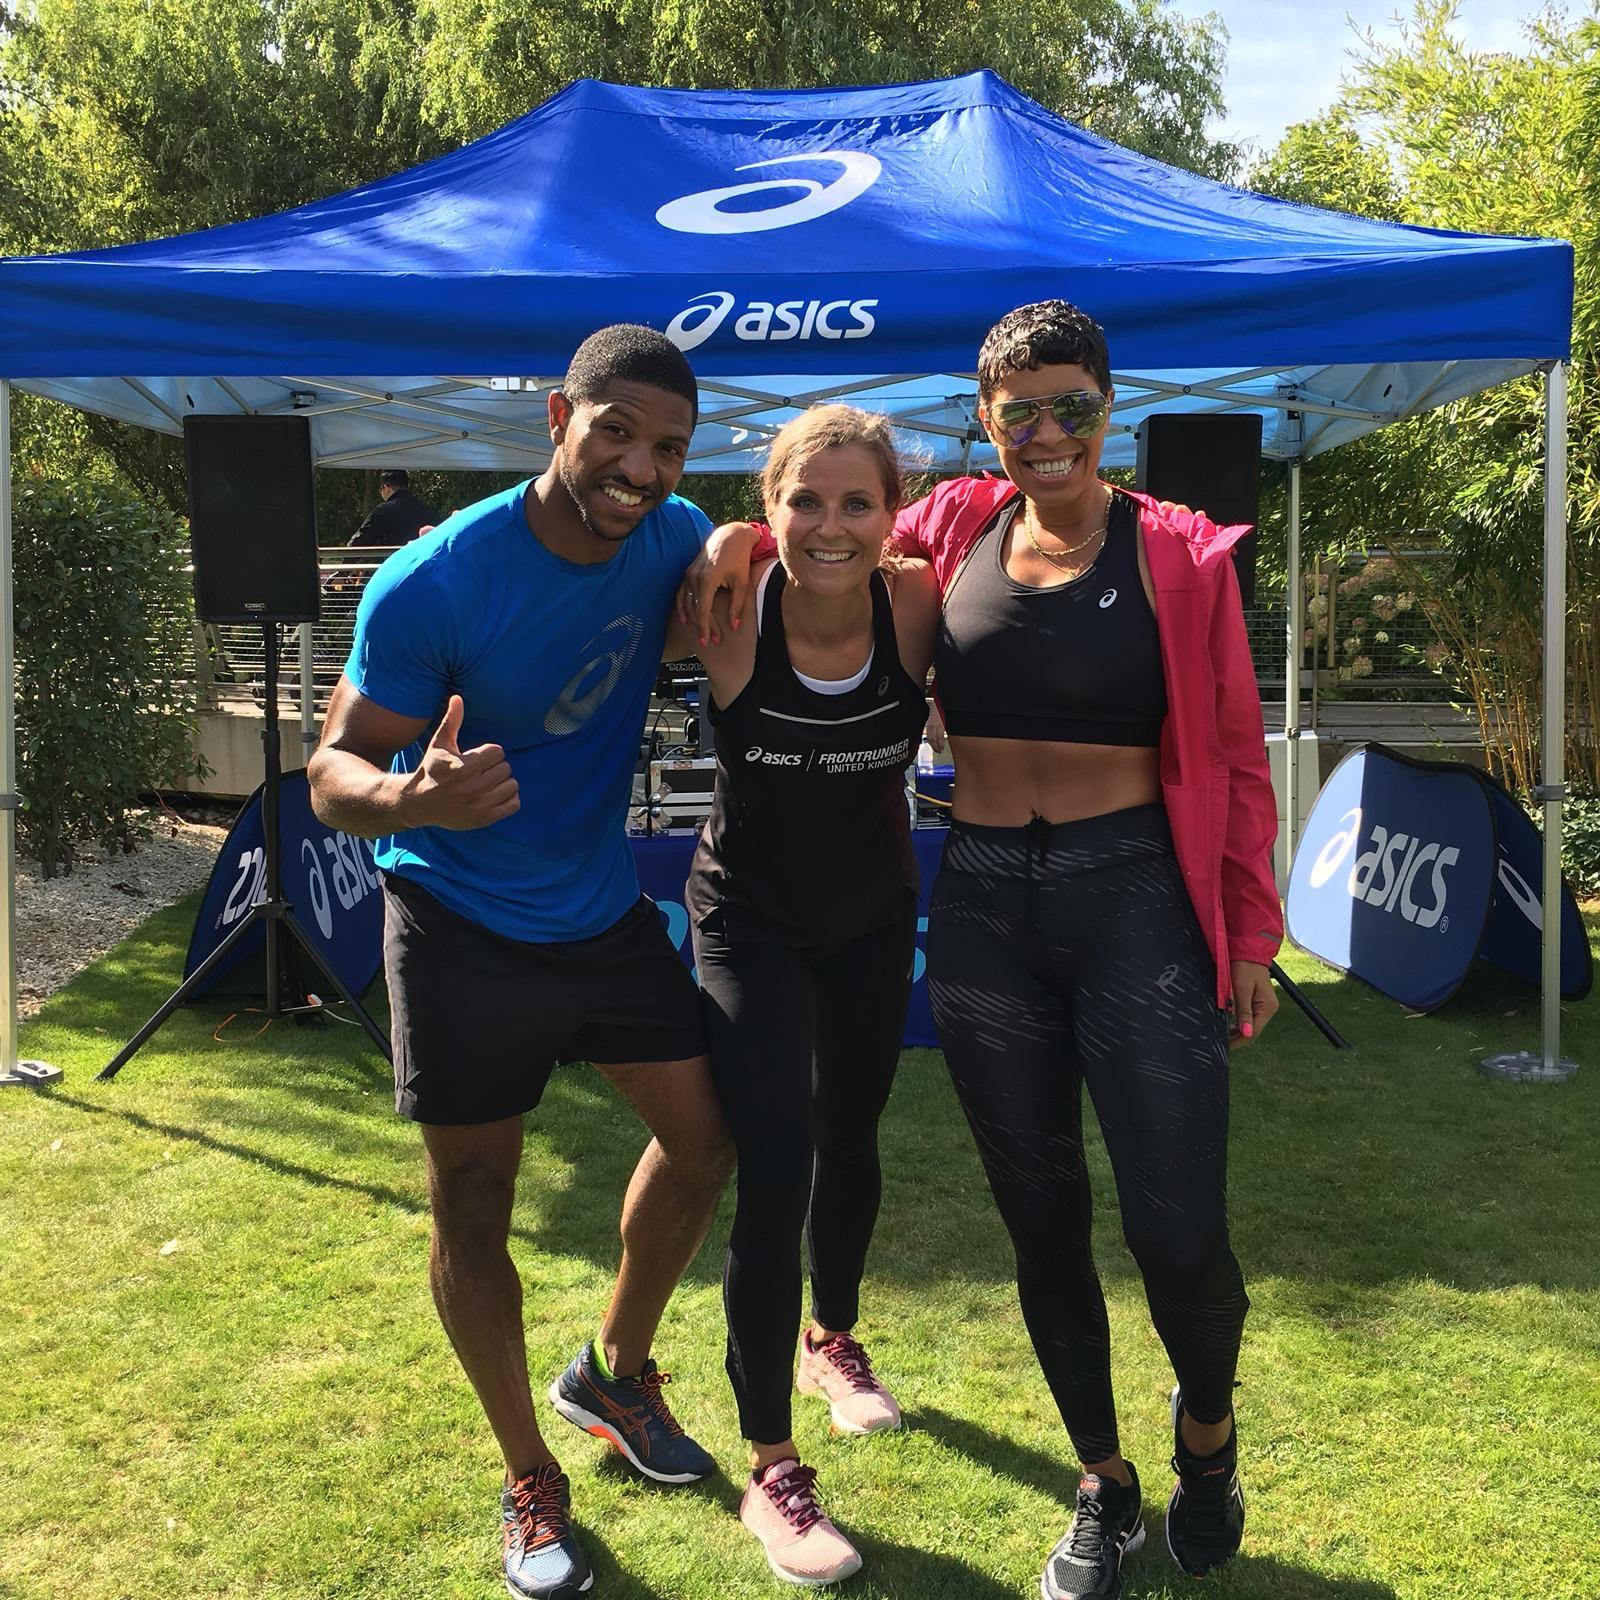 ASICS Frontrunner - Grand Opening of the ASICS Bicester Store